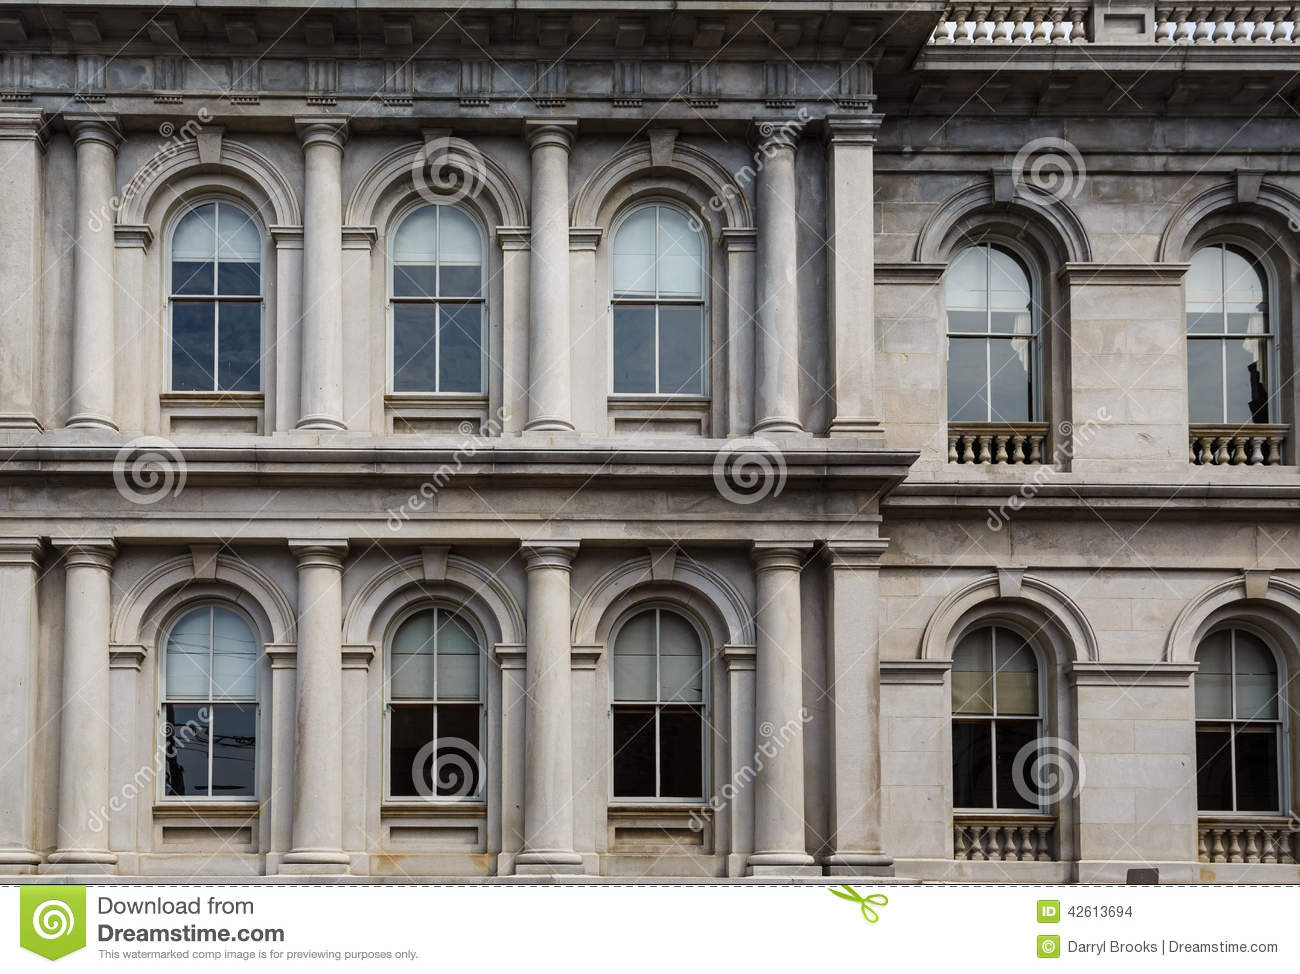 Columns and arches in classic stone building stock photo for Classic builders